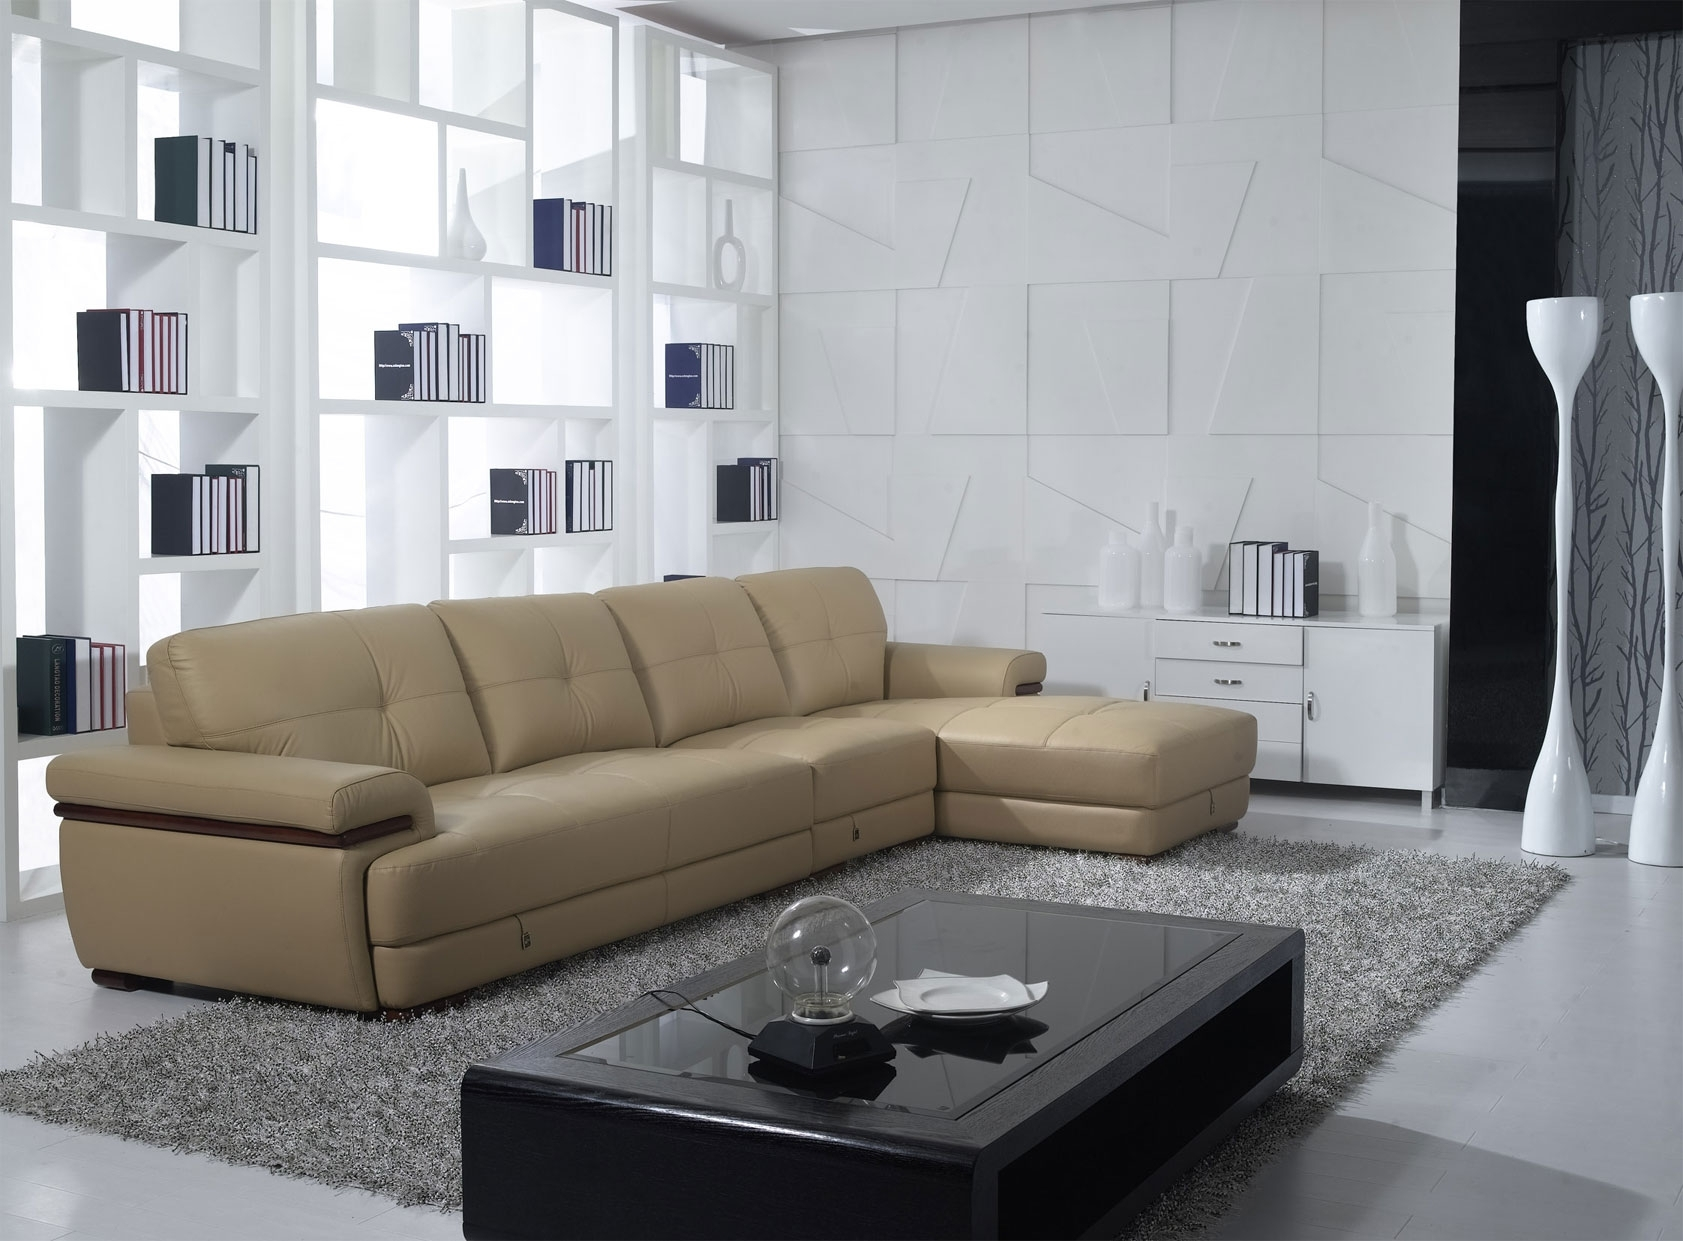 Fancy Quality Sectional Sofas 15 And Couches Ideas With High Sofa With Quality Sectional Sofas (Image 5 of 10)